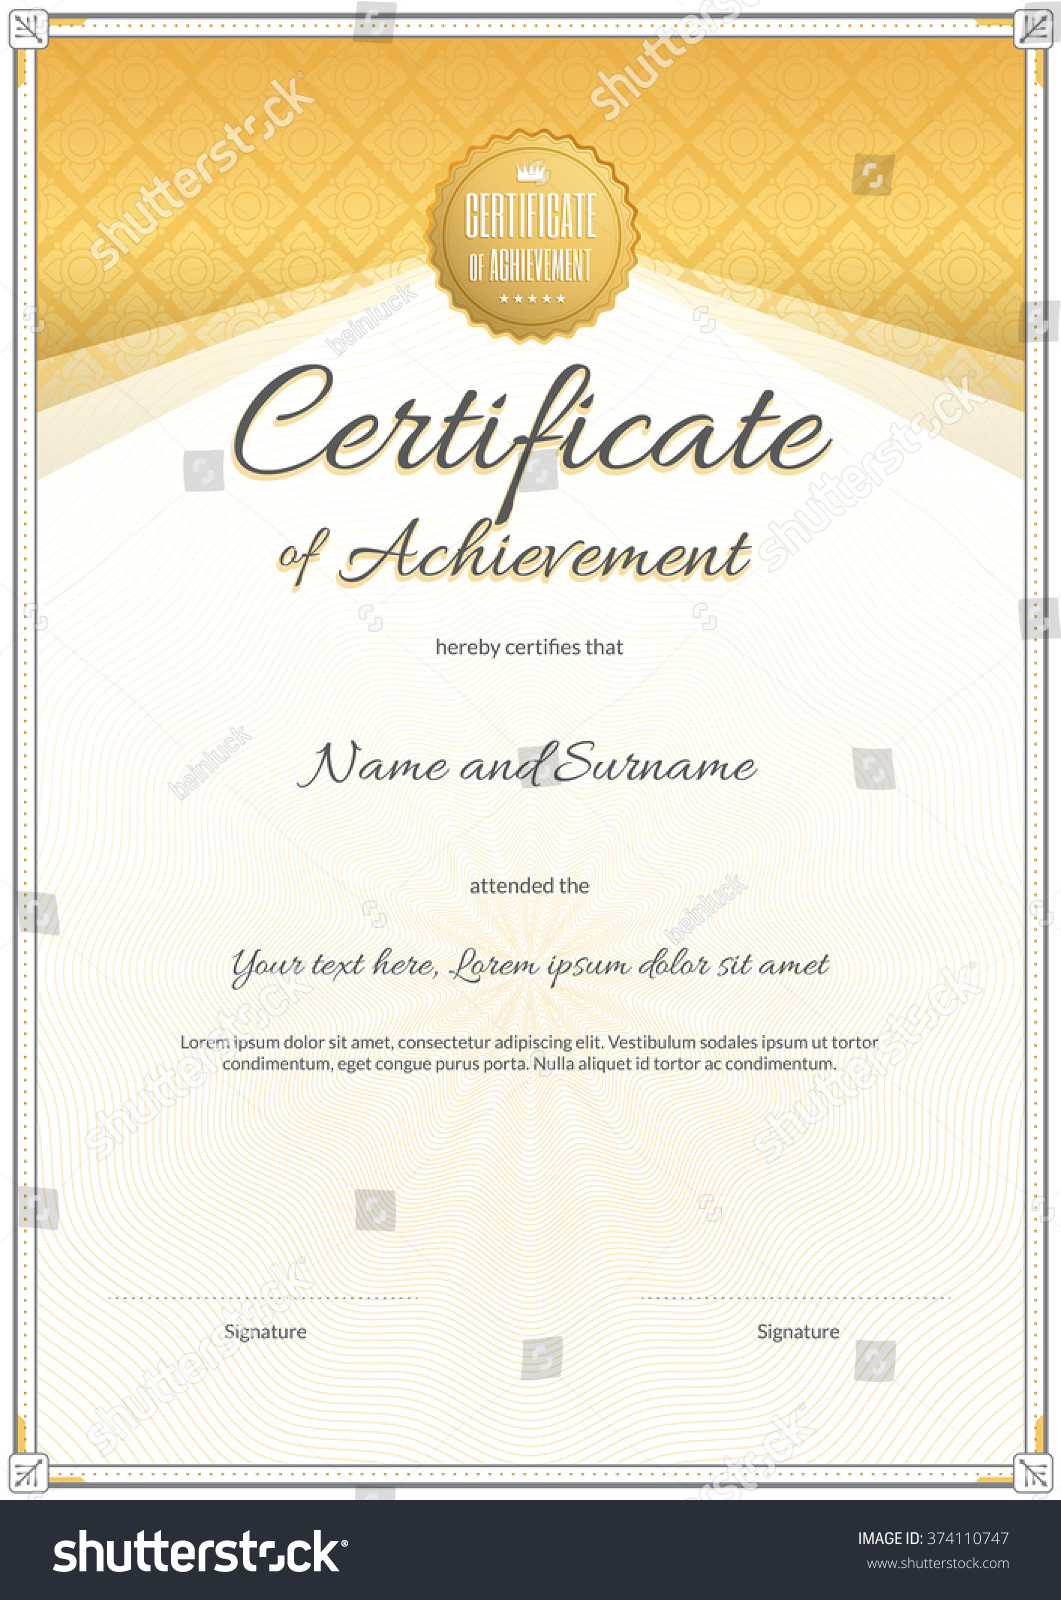 Certificate template portrait vector format achievement stock certificate template in portrait and vector format for achievement graduation completion yadclub Image collections